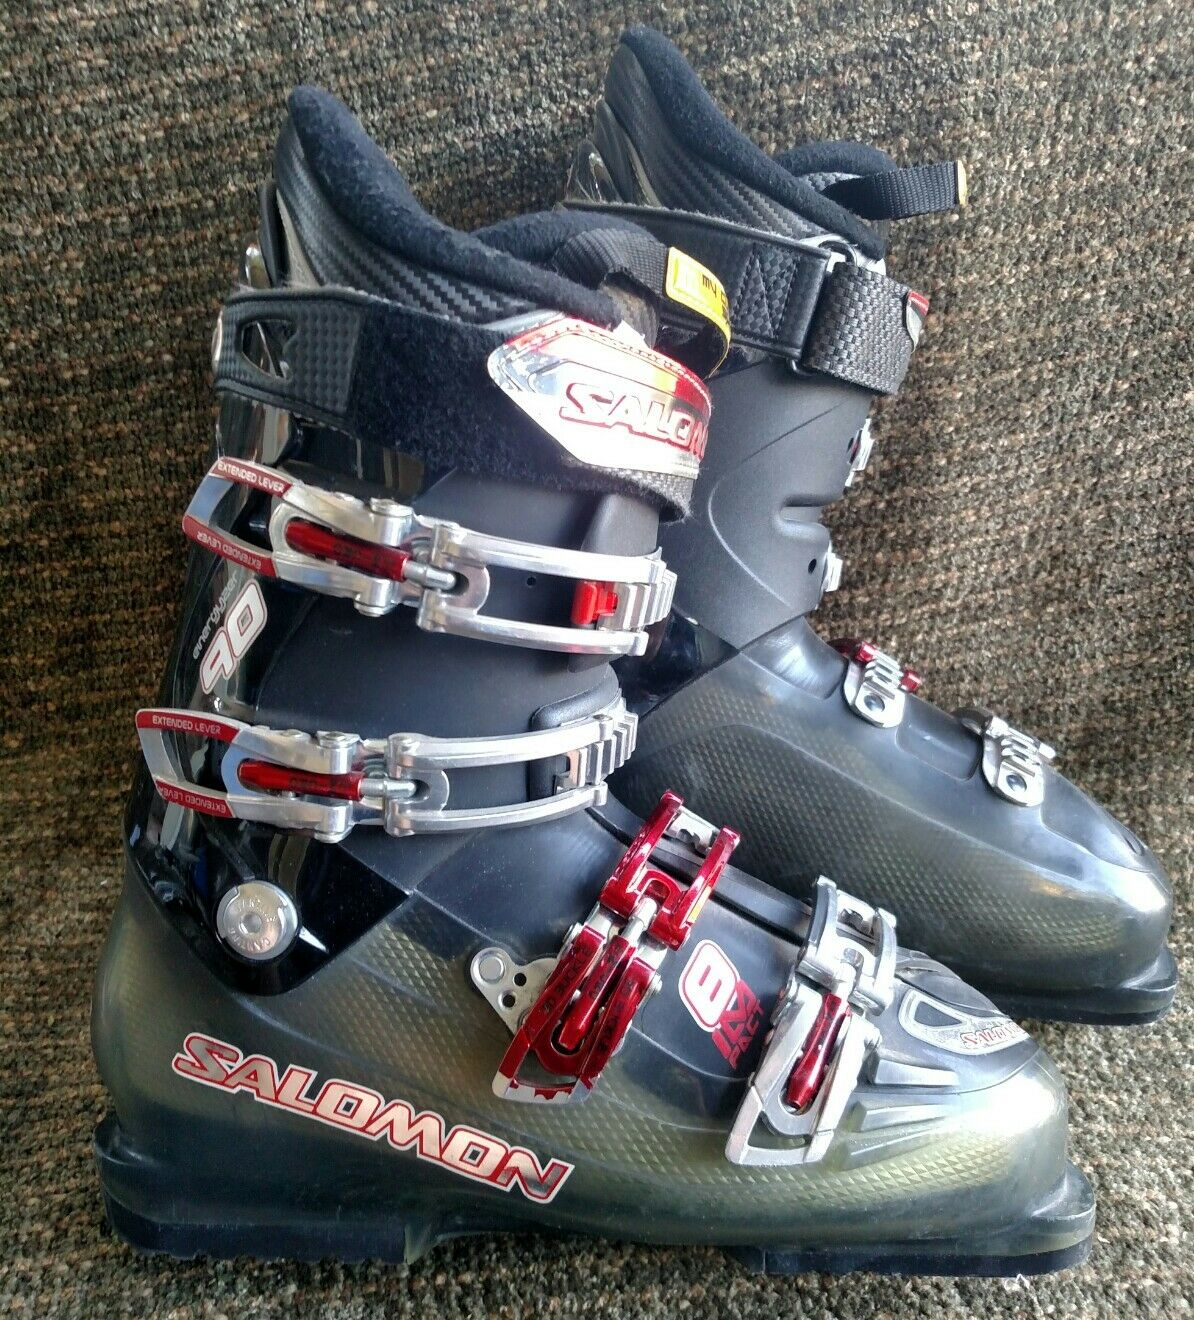 Salomon Impact 8 grey and red 317mm downhill ski boots size 9.5 US men's